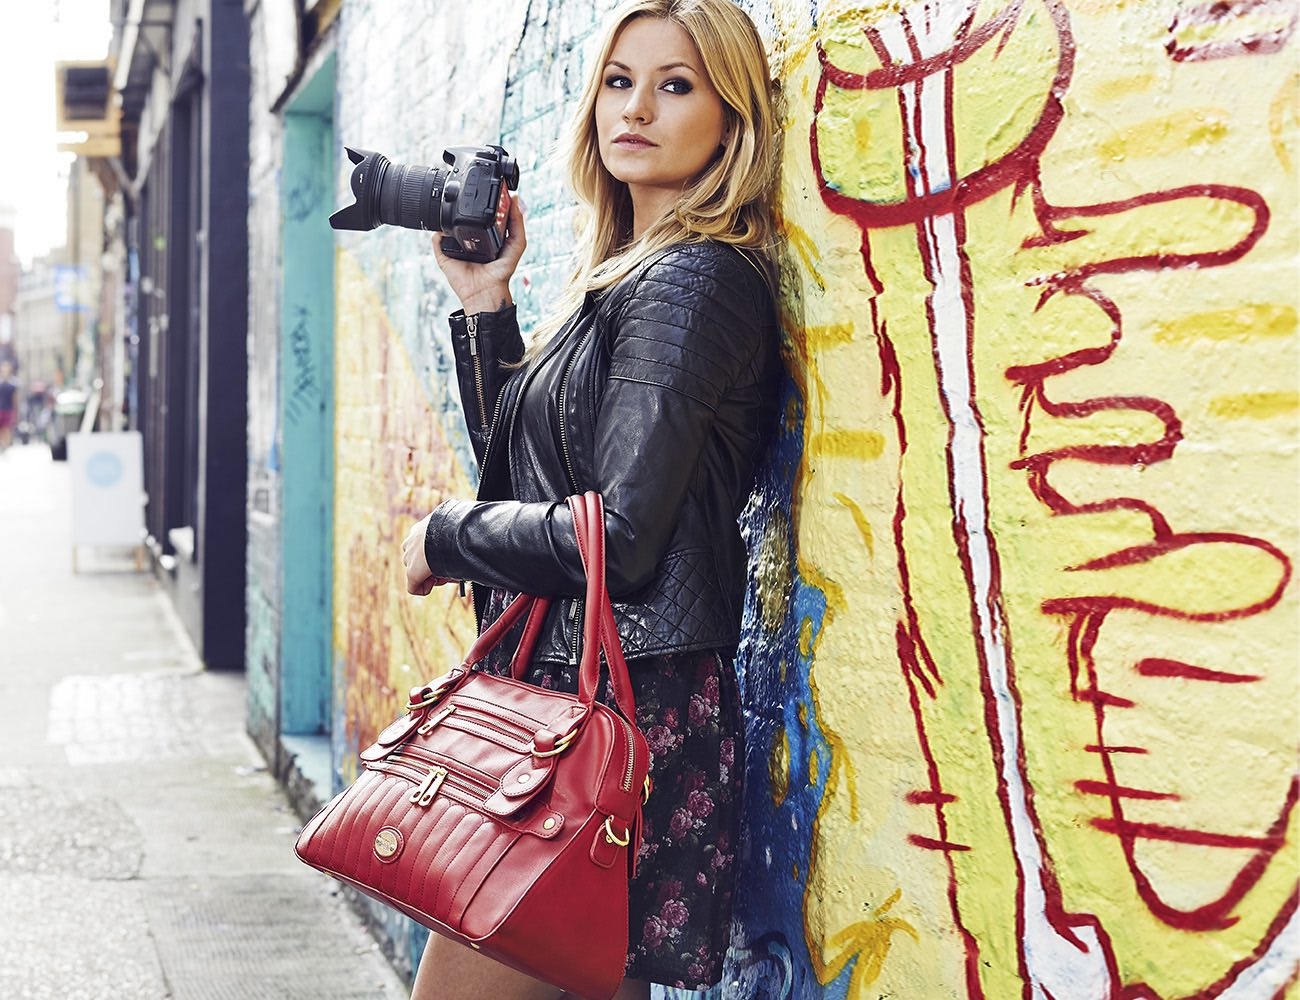 The Hampton Camera Bag by Mooli London